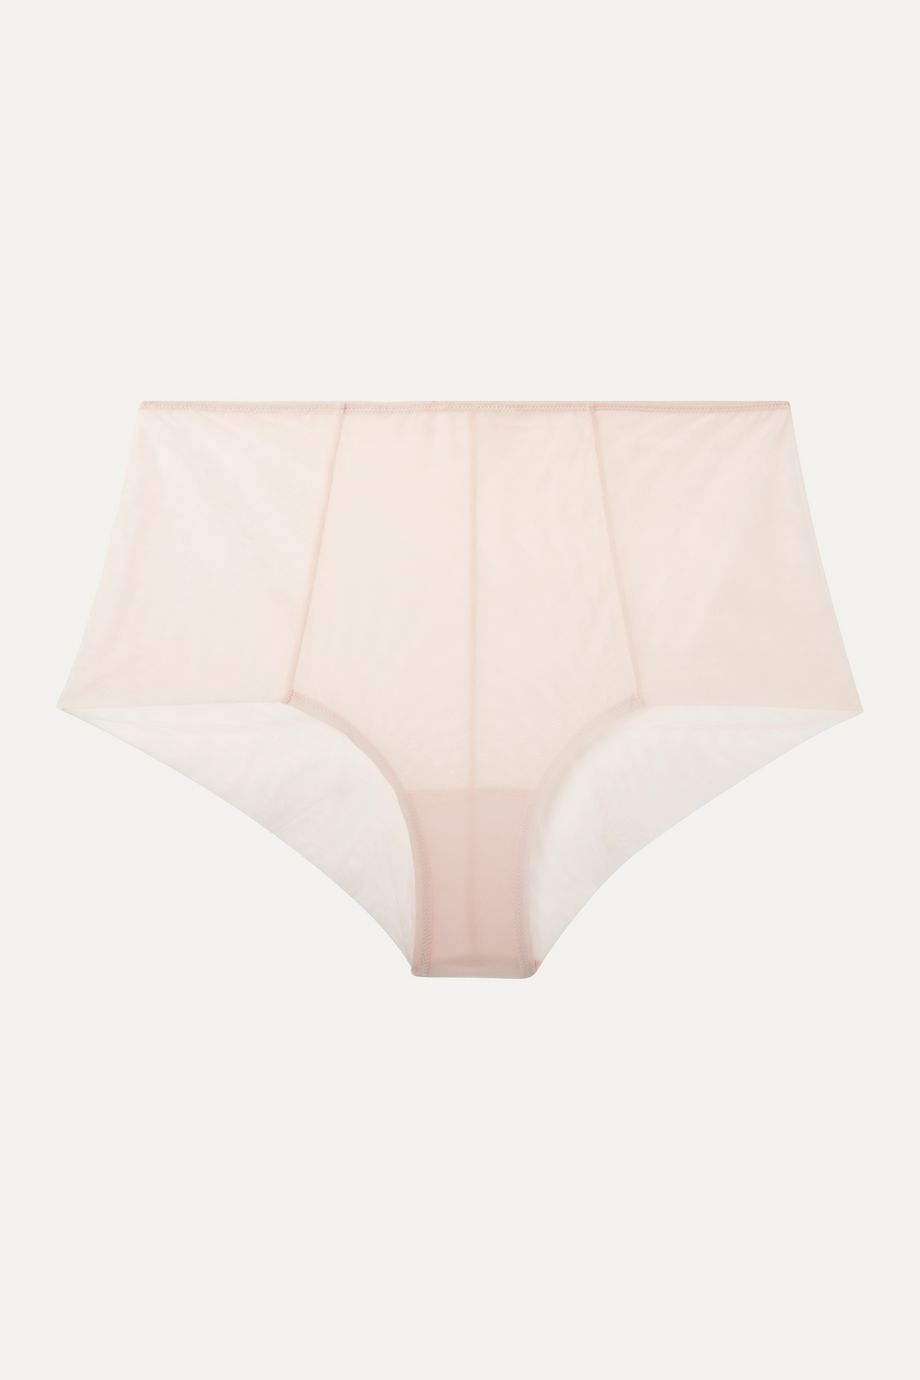 The Great Eros Canova stretch-tulle briefs